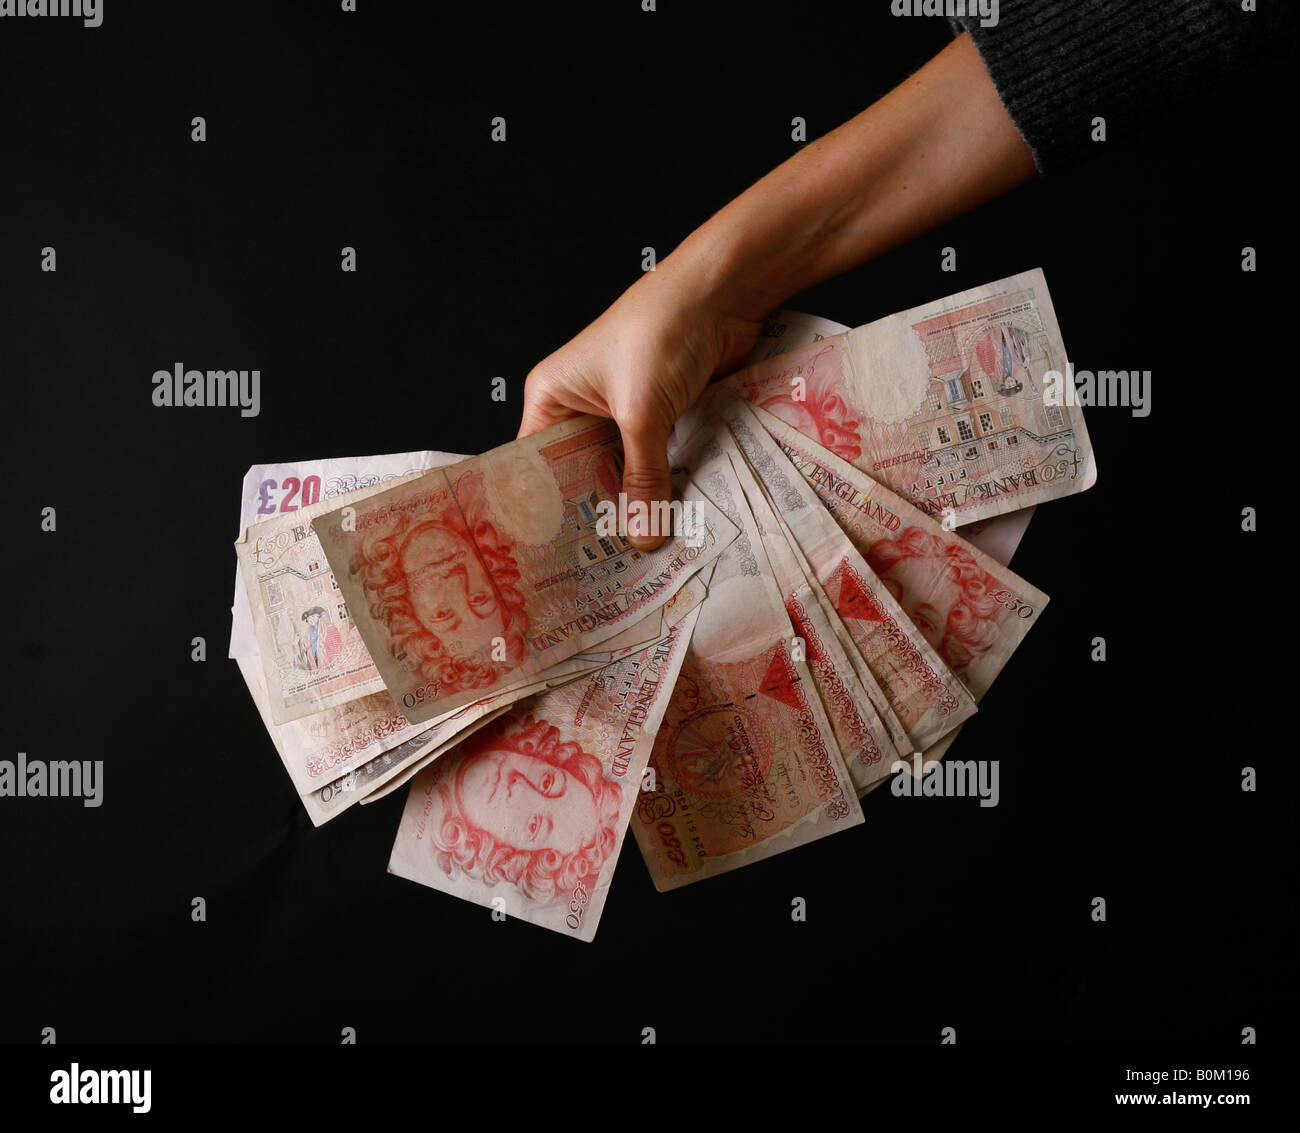 Cash in the hand, banking crisis, bank crisis, credit crunch - Stock Image